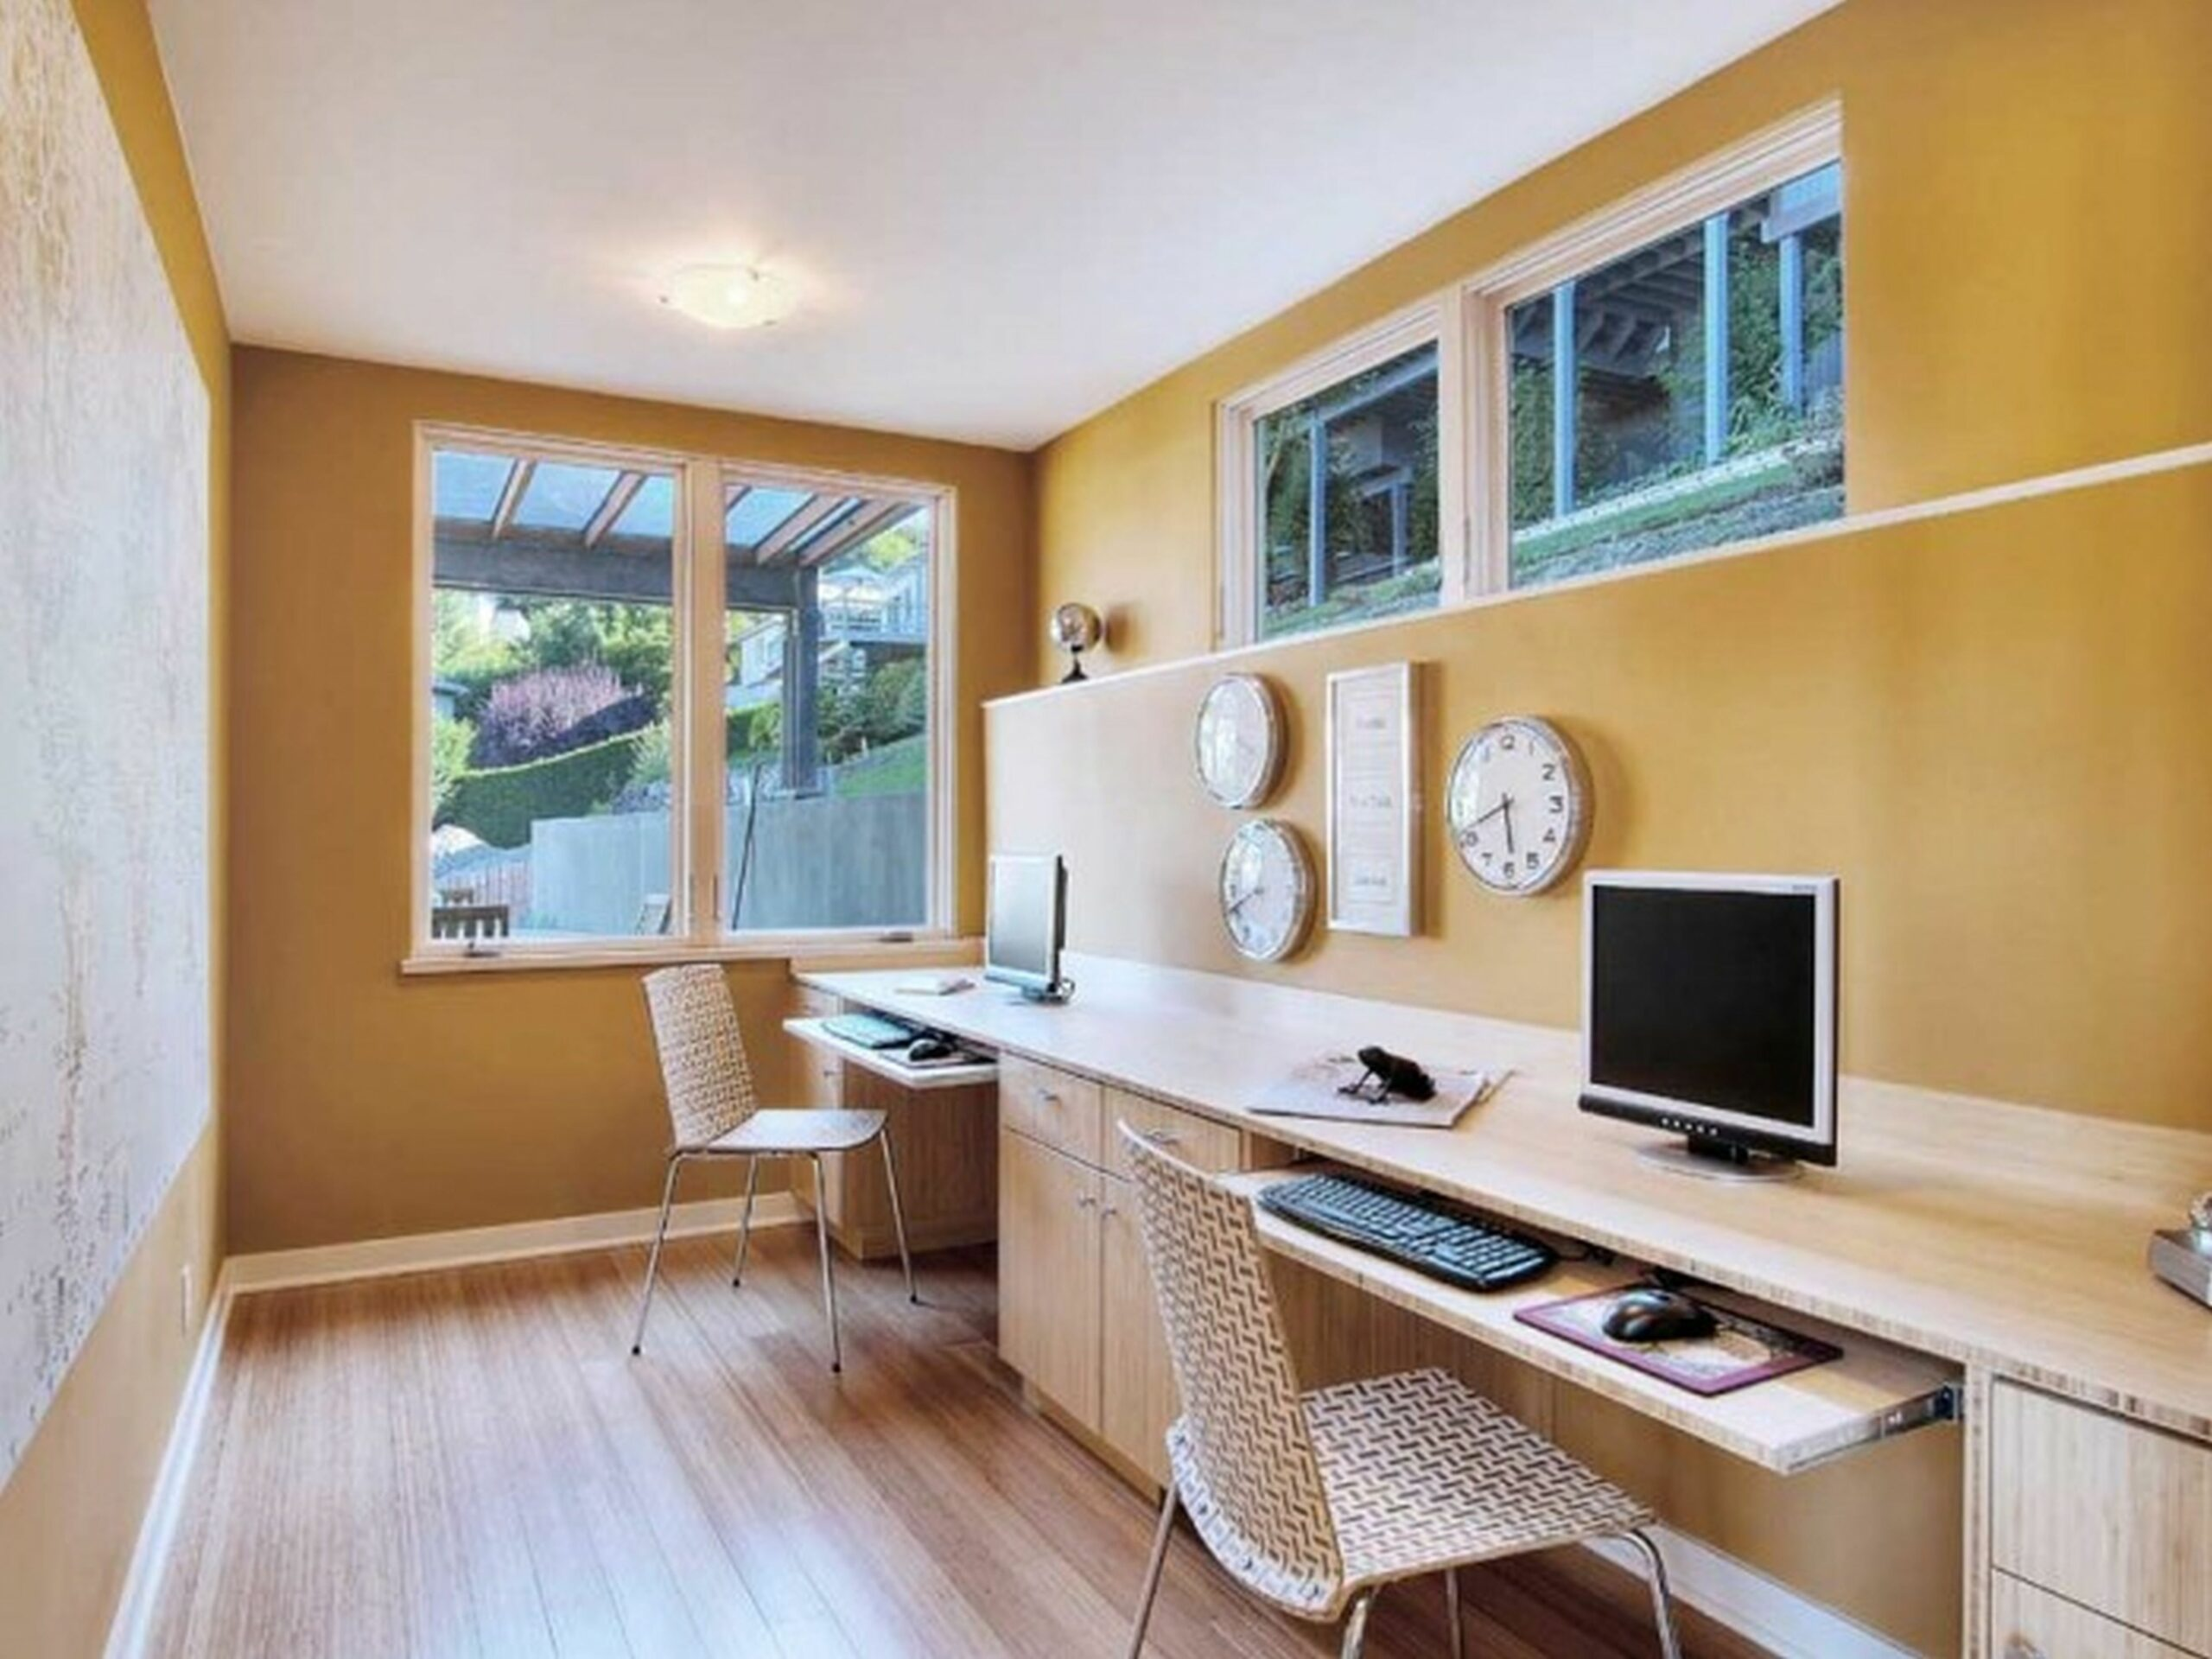 basement home office design ideas - Google Search | Home office ..